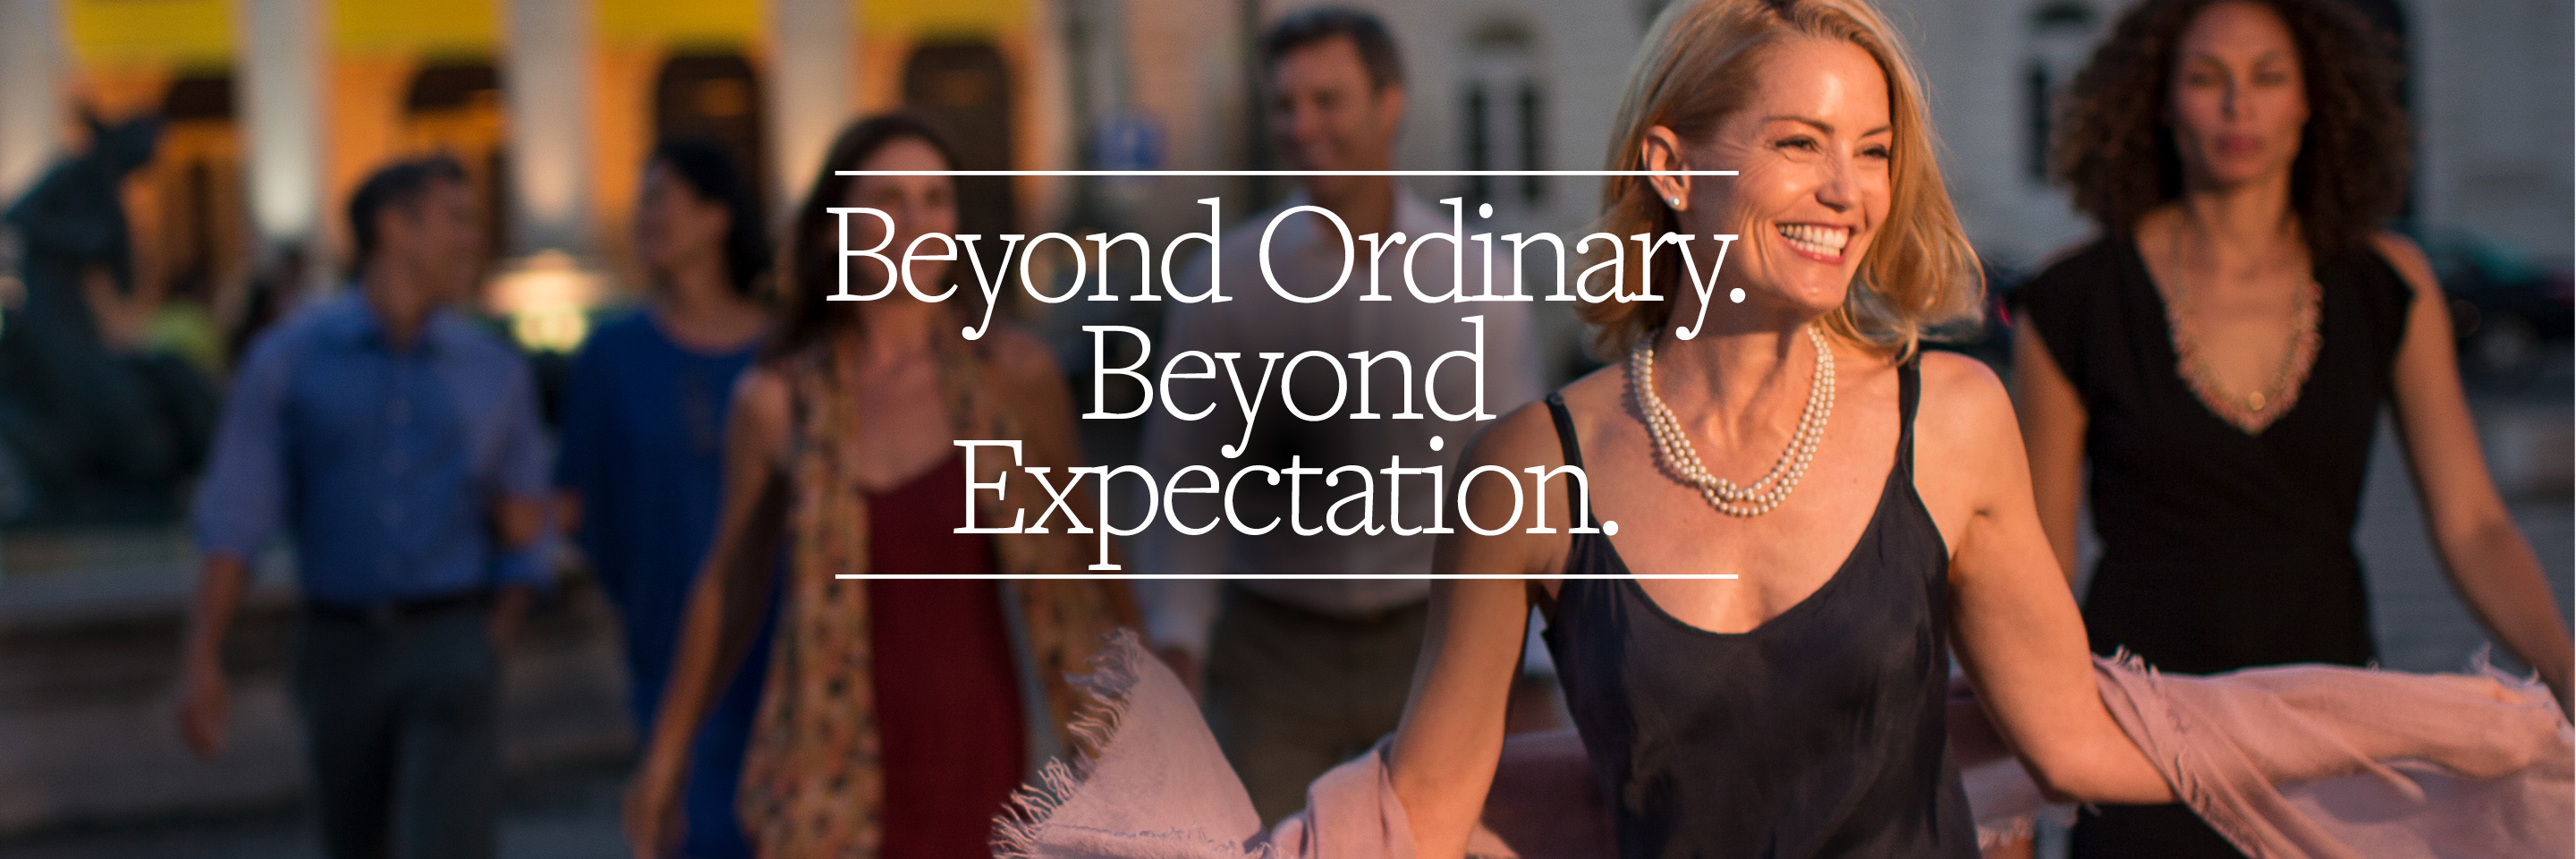 Beyond Ordinary. Beyond Expectations.